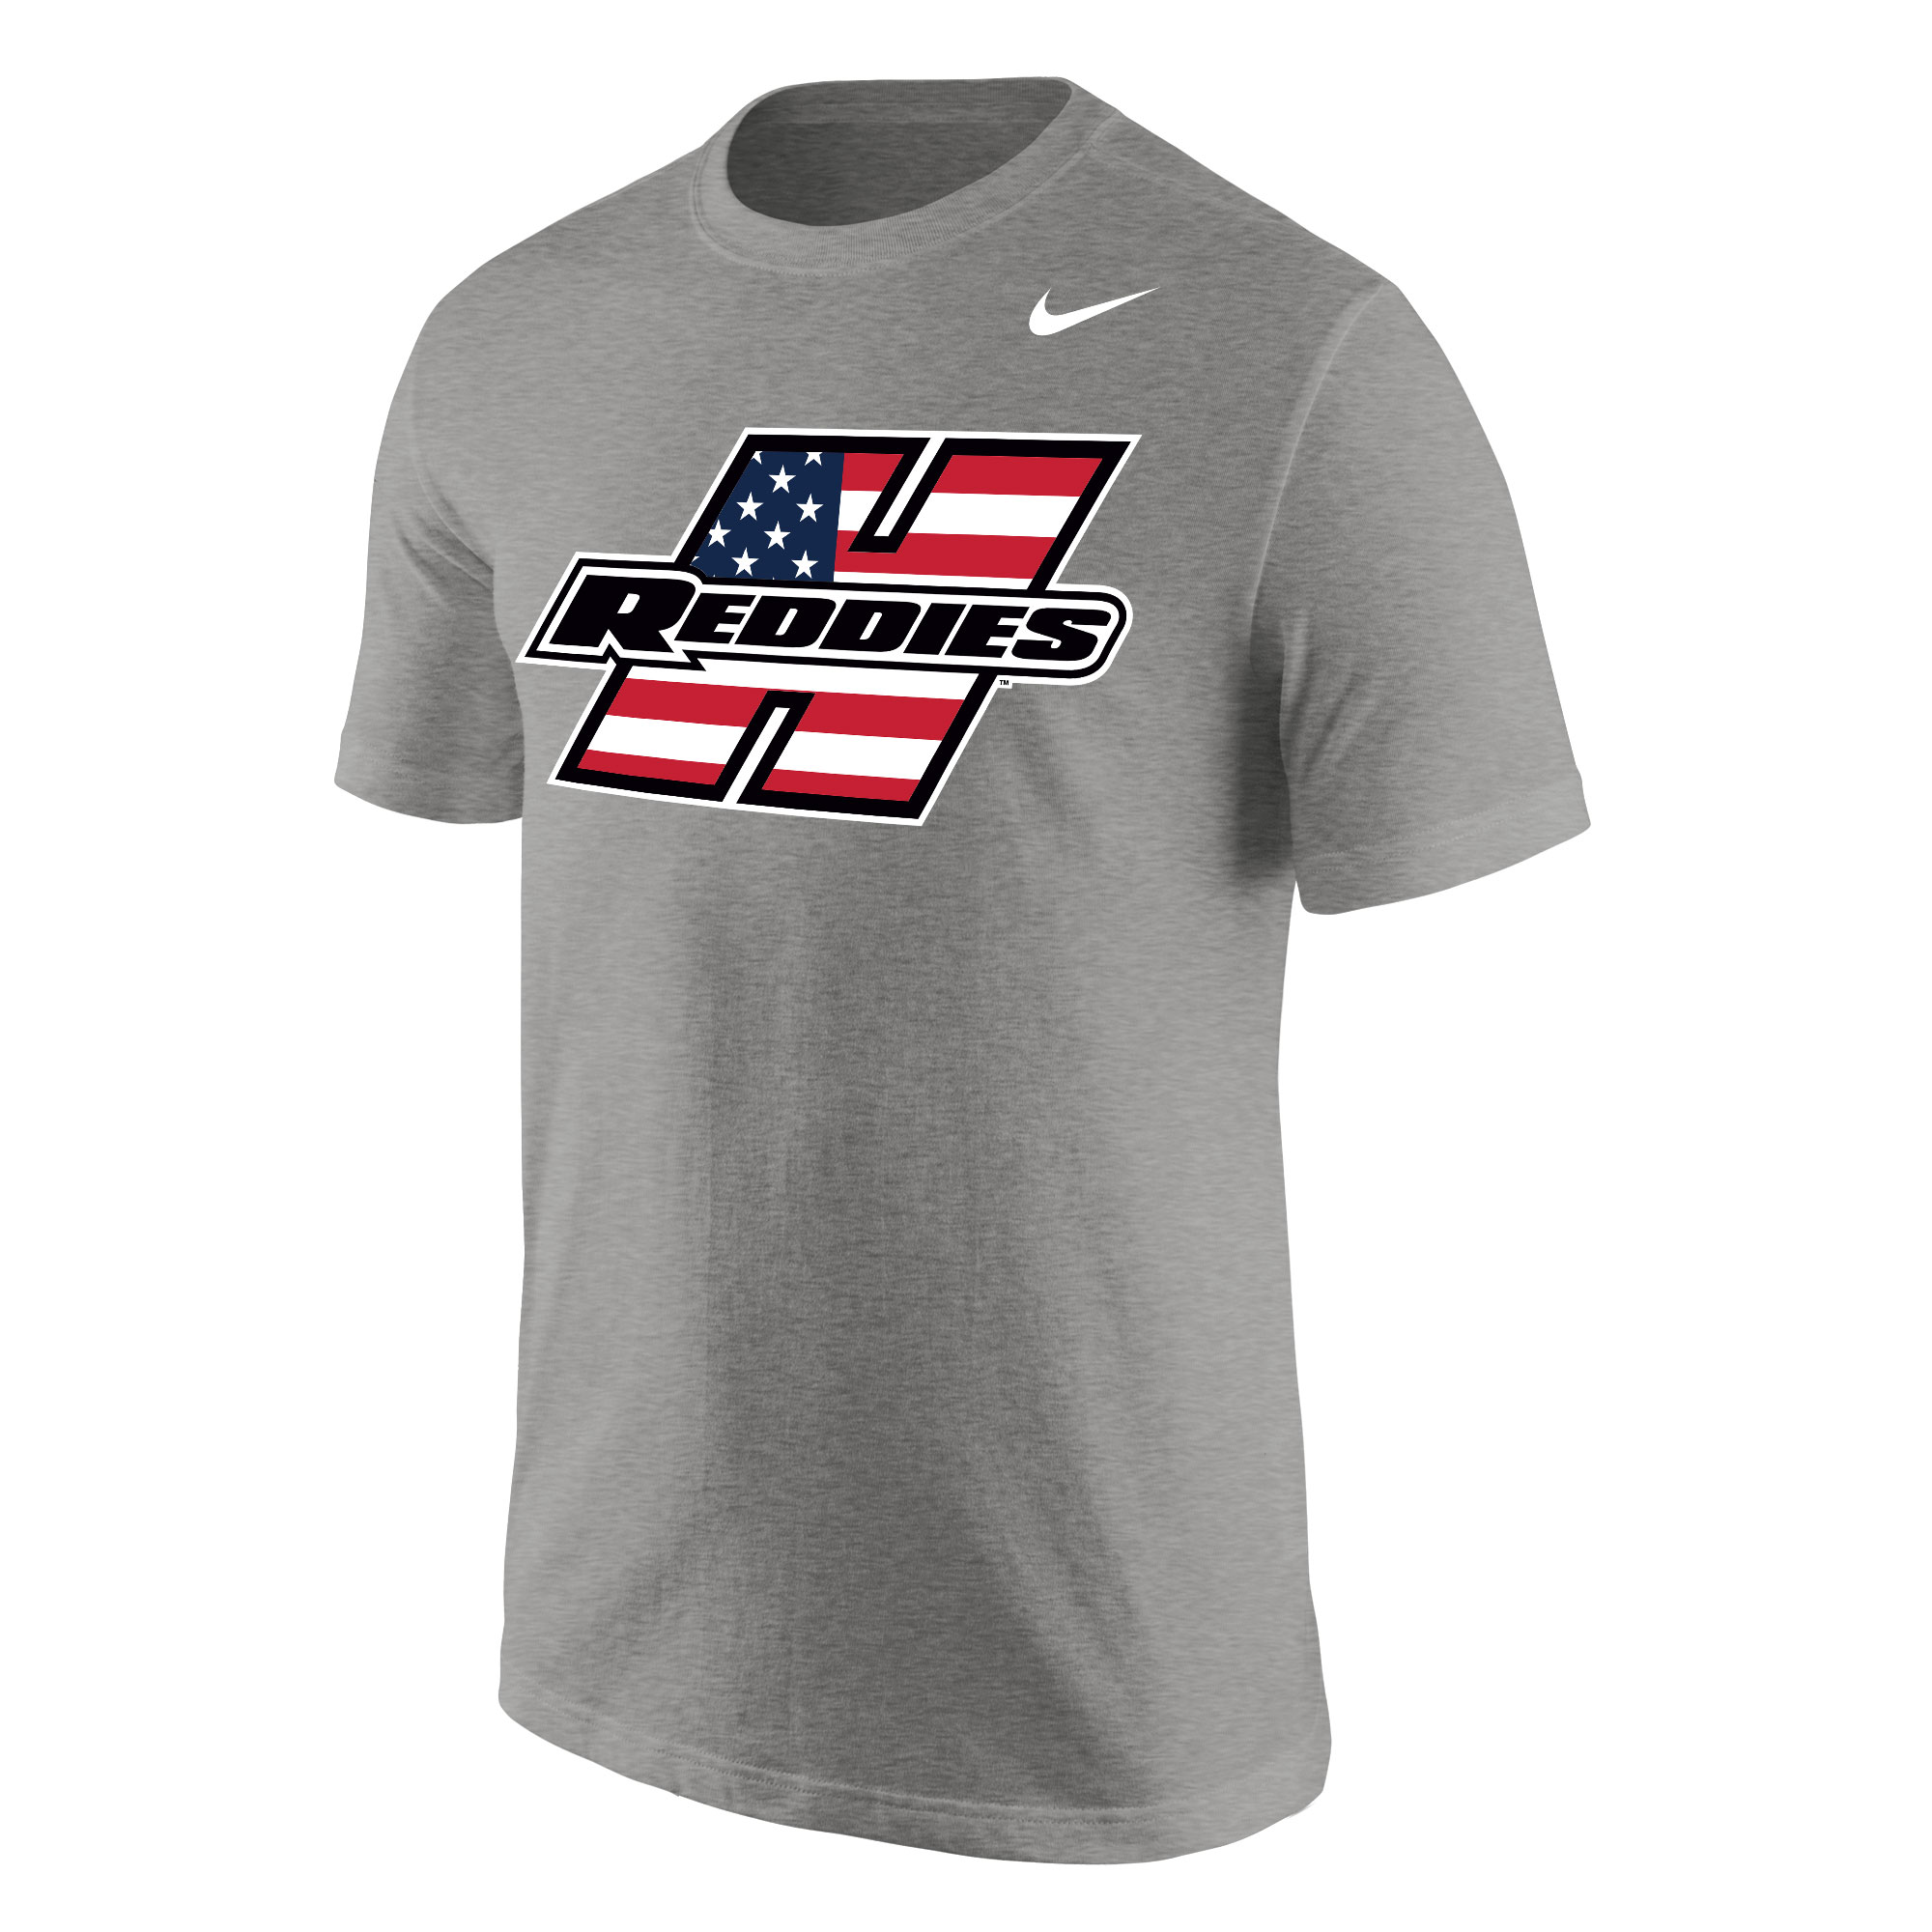 Henderson Reddies American Flag Men's Core Short Sleeve T-Shirt